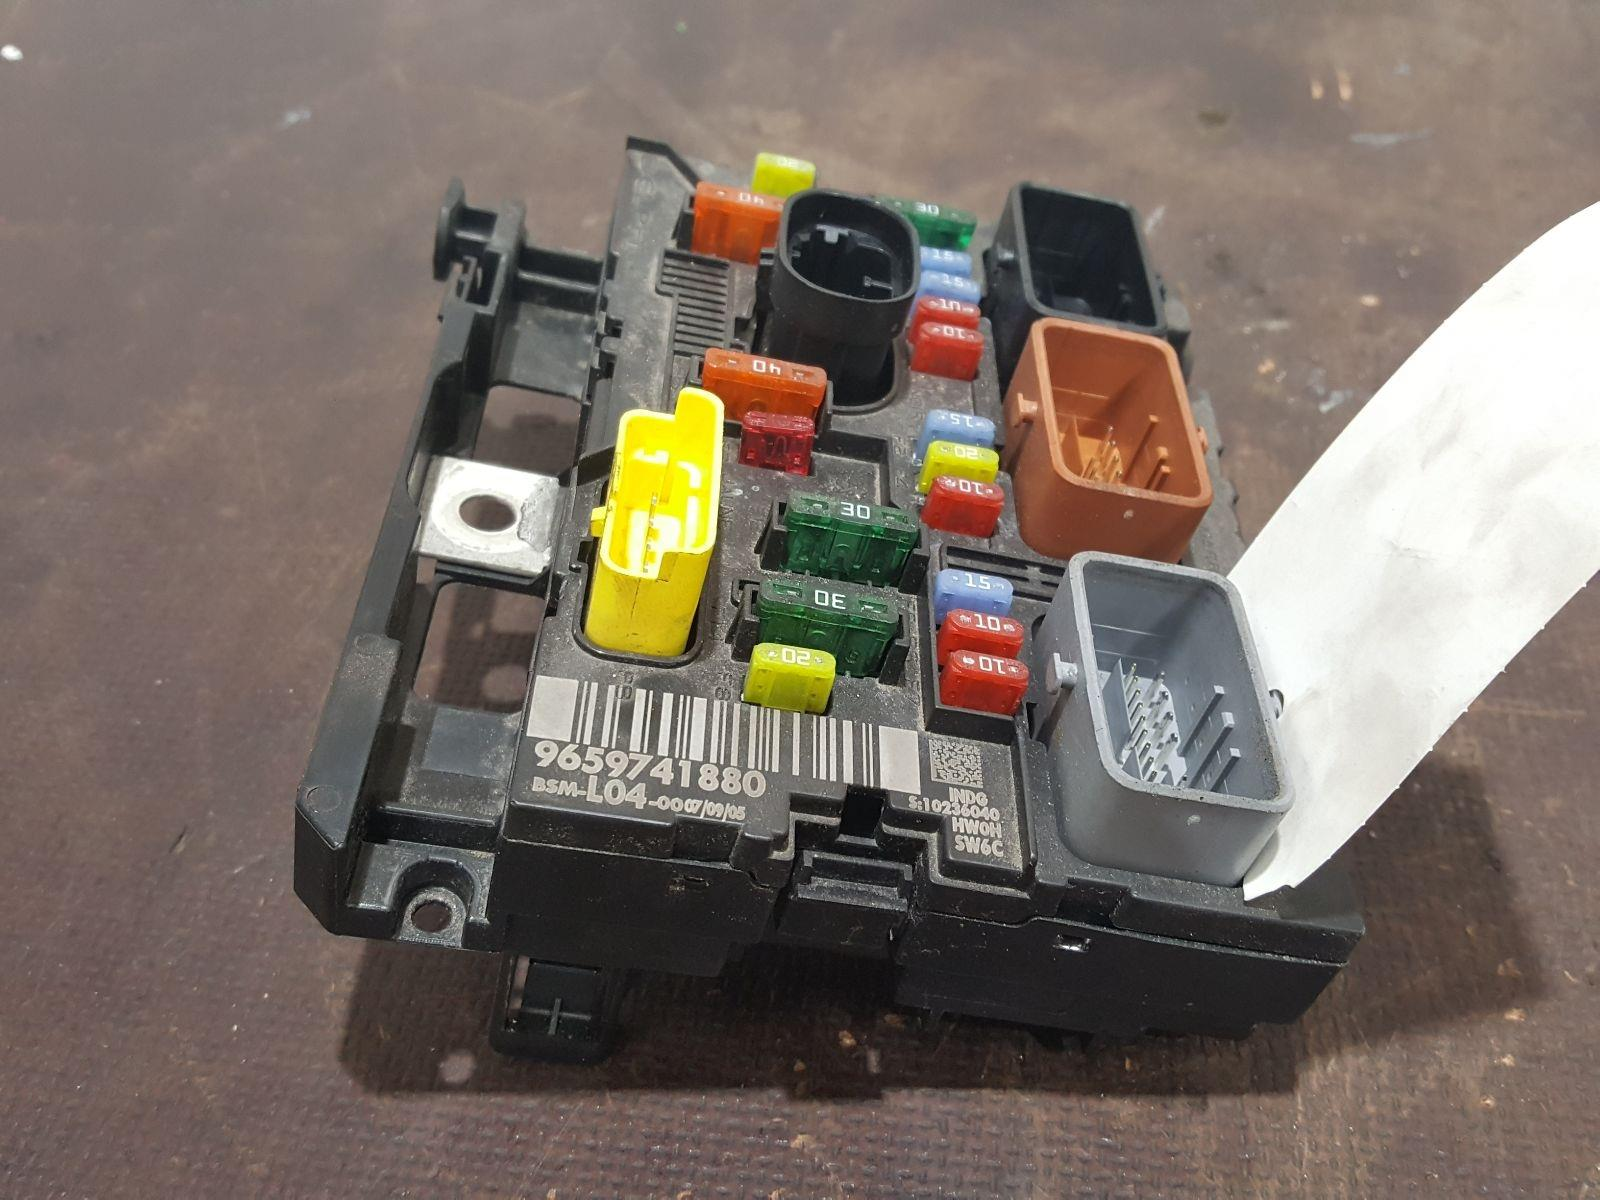 Peugeot 307 2005 To 2008 Fuse Box BSI BMI BCM Body Control Unit 9659741880